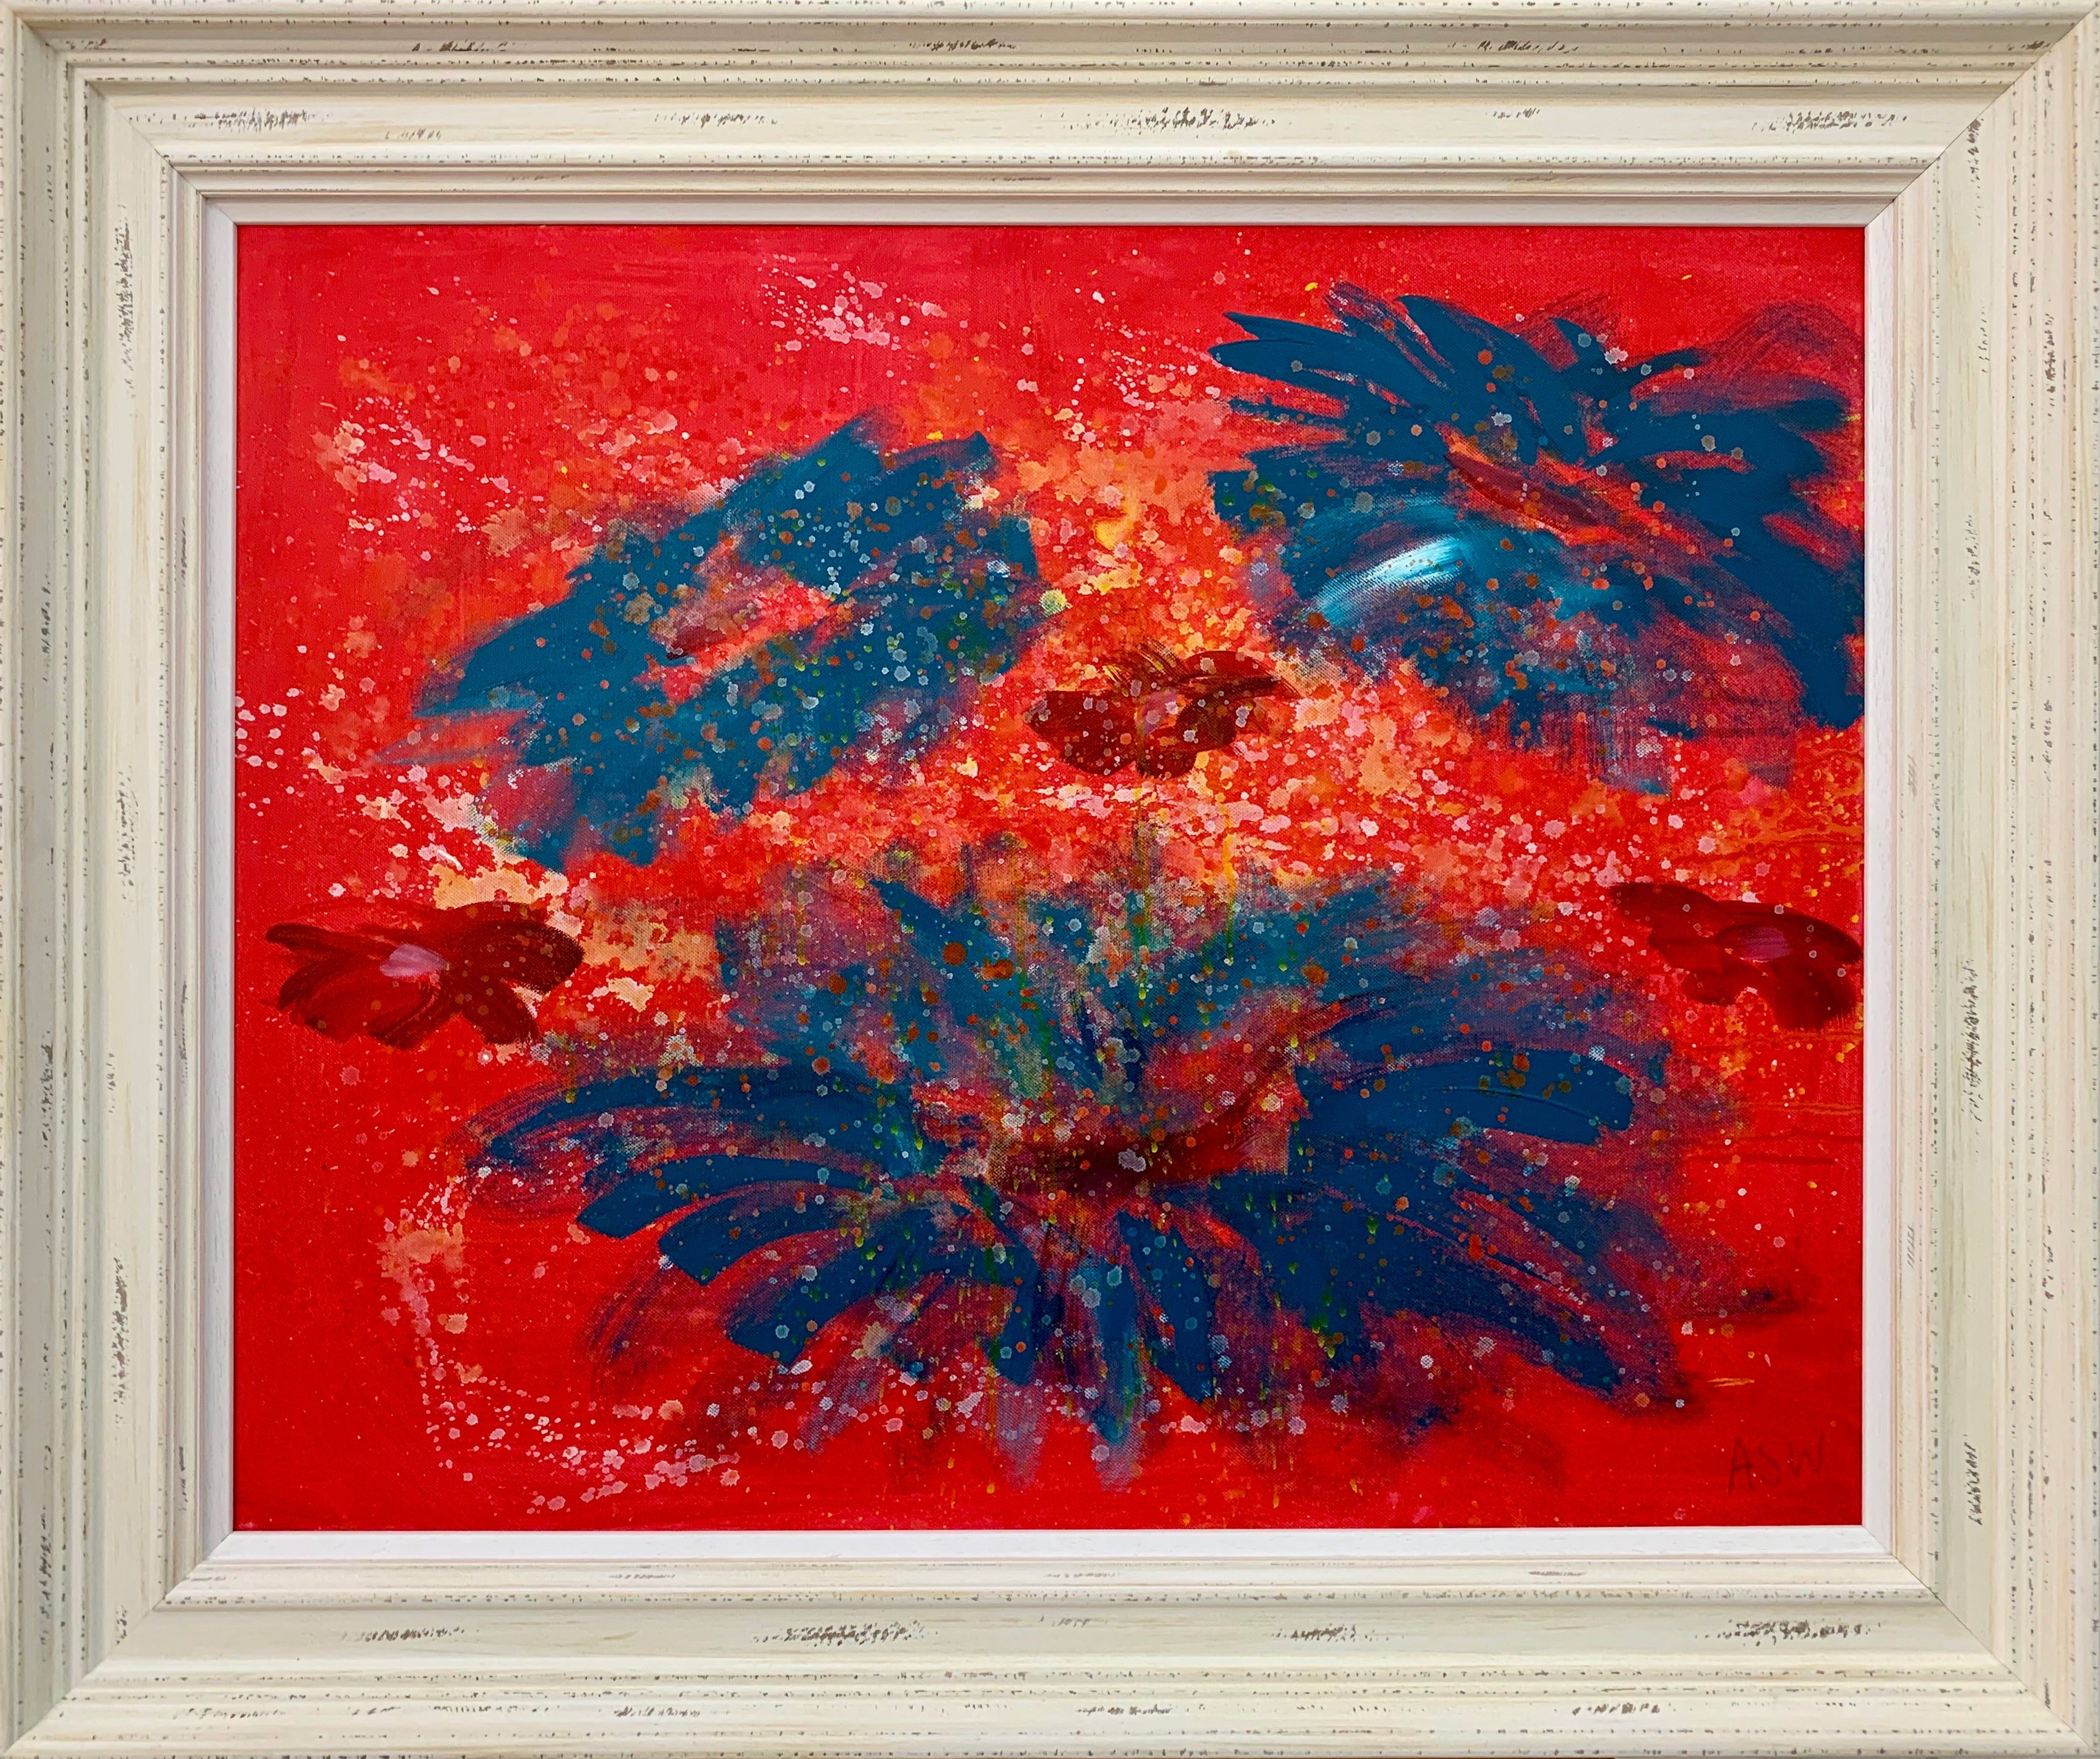 Abstract Turquoise & Red Flowers on Pink Background by British Landscape Artist